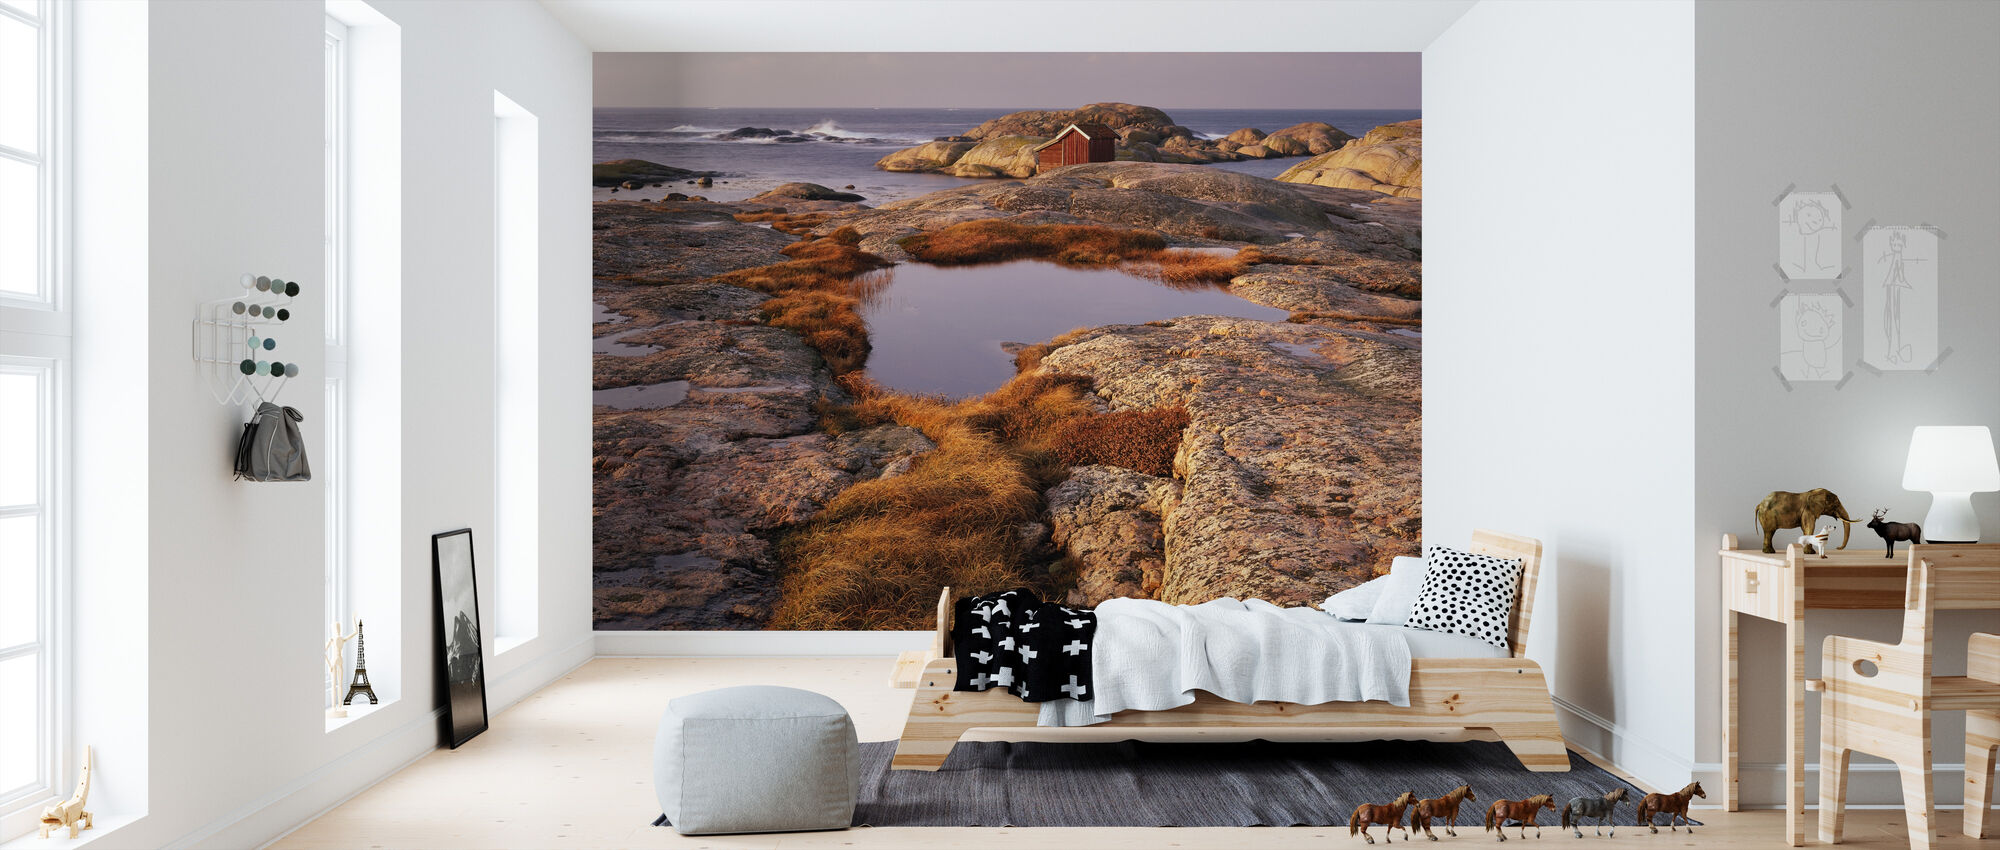 View of the Archipelago - Swedish West Coast - Wallpaper - Kids Room